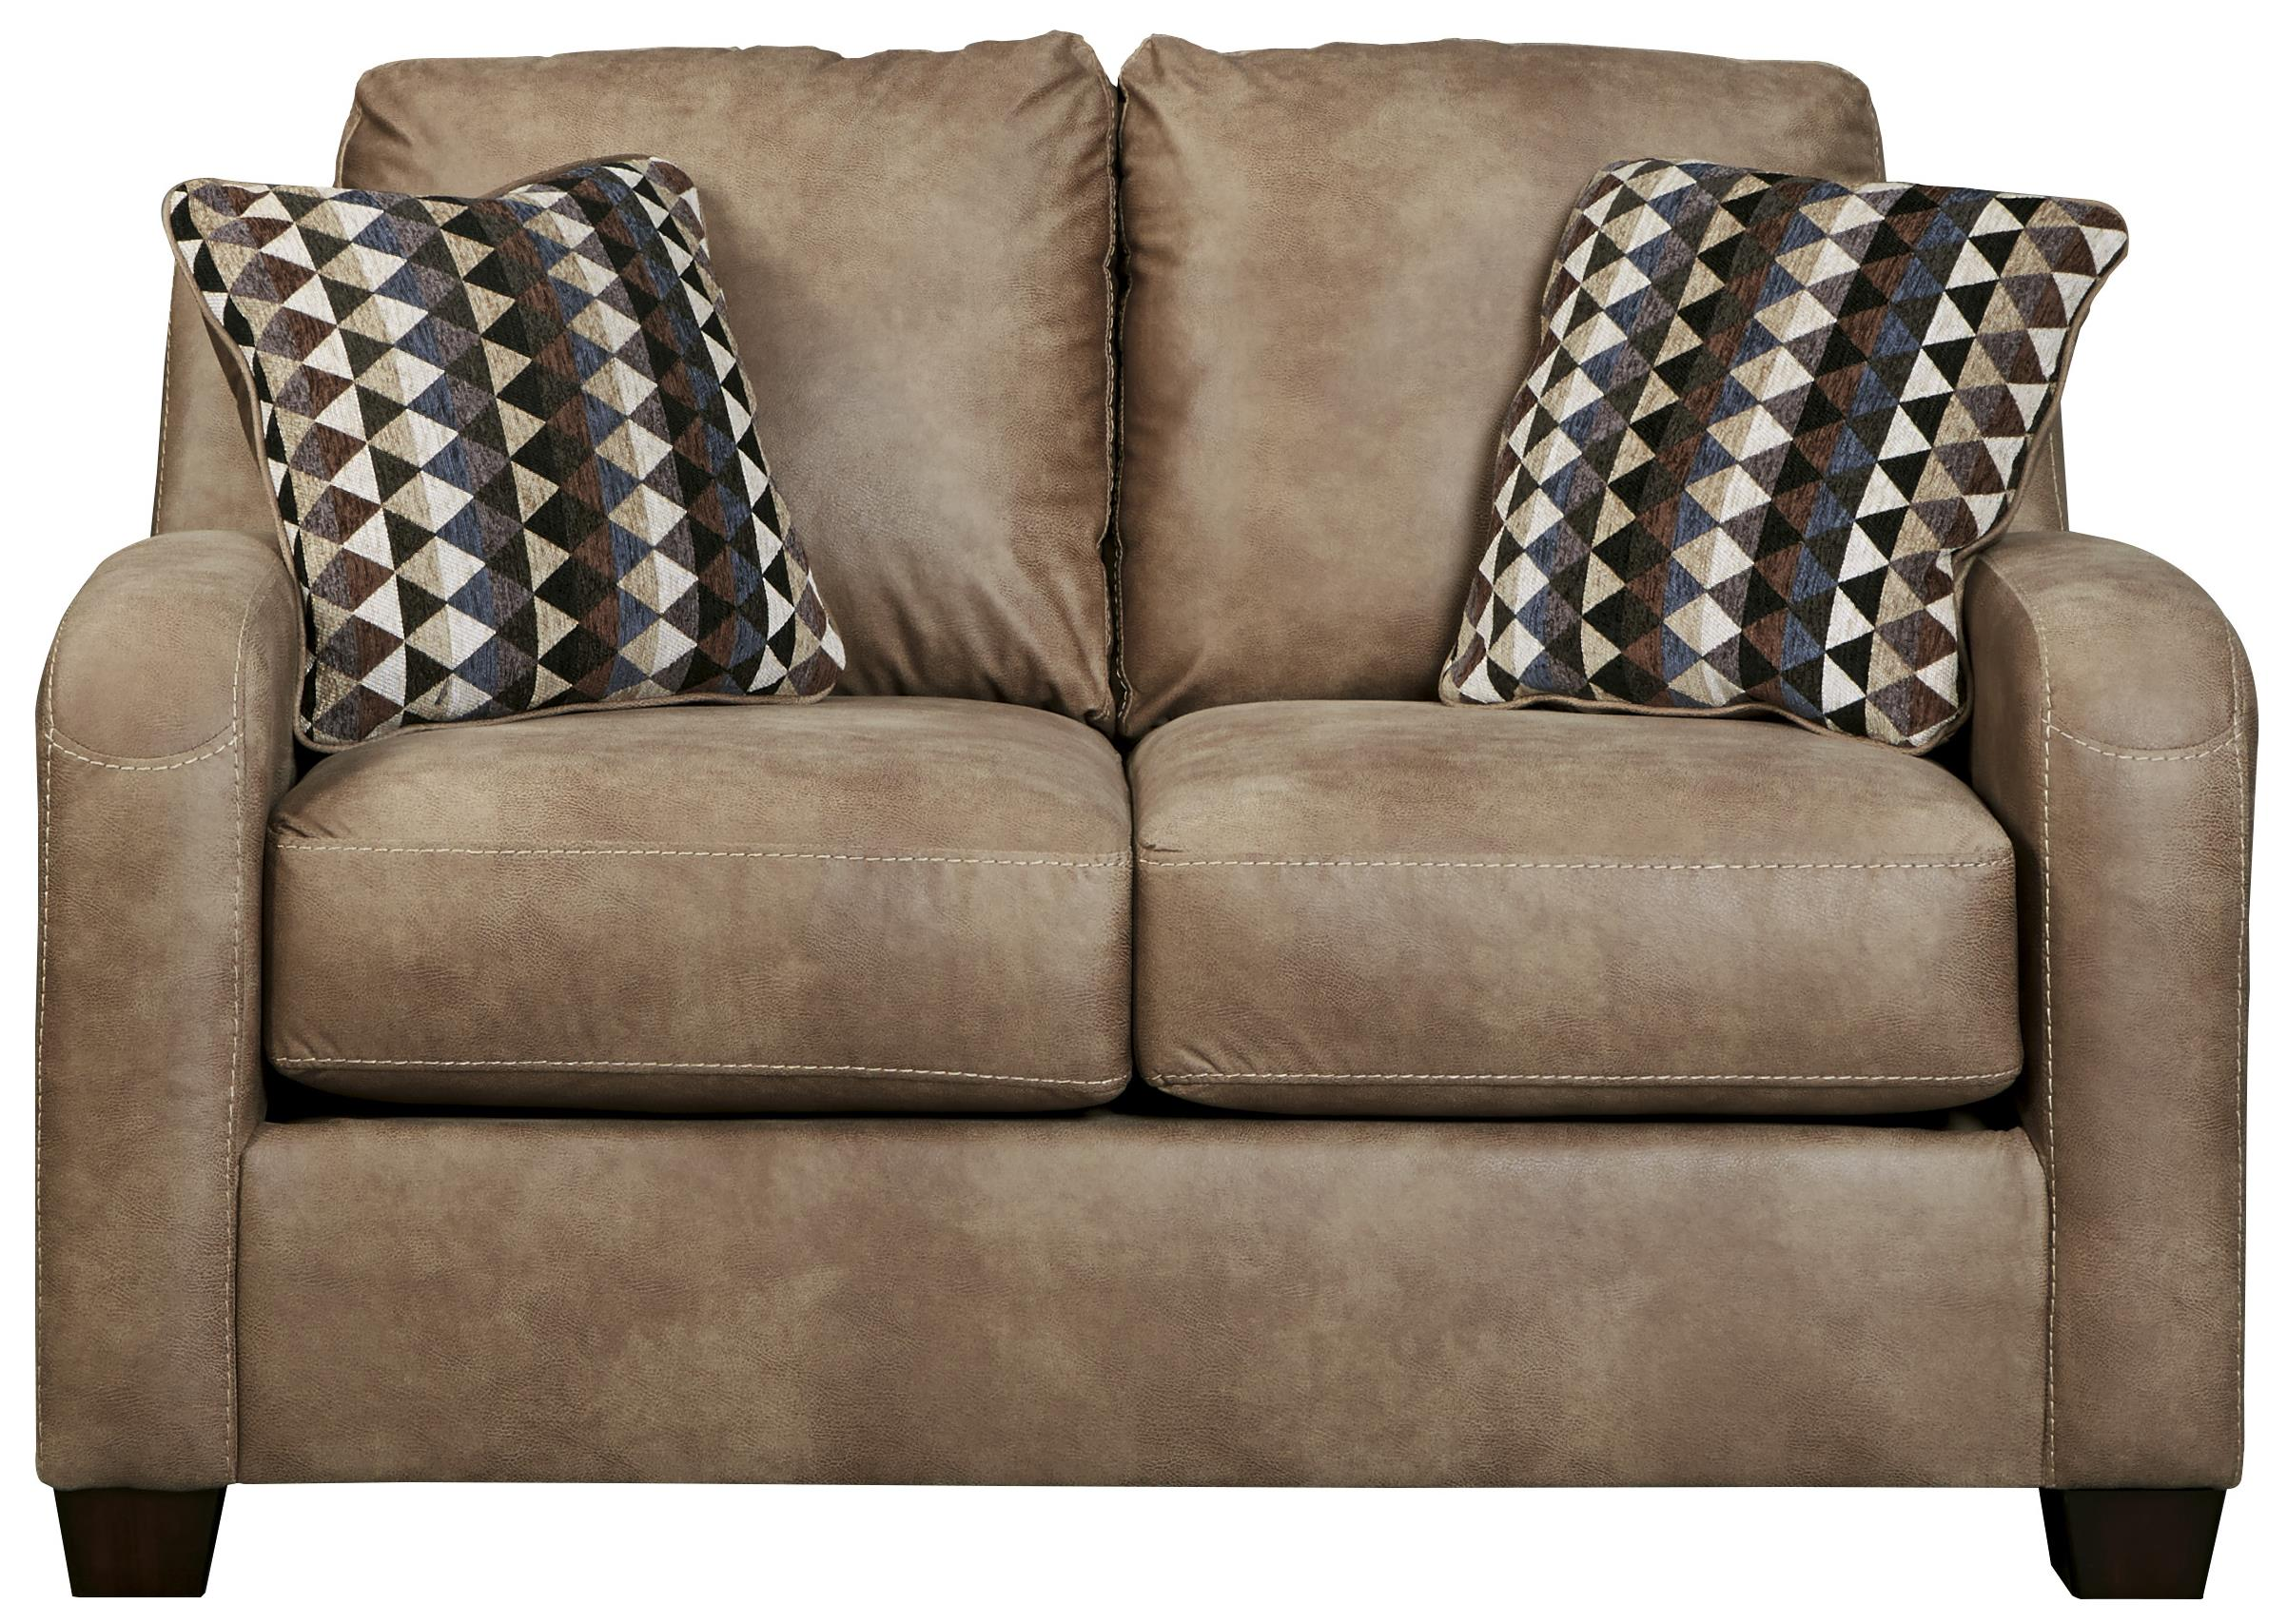 Benchcraft Alturo Loveseat - Item Number: 6000335